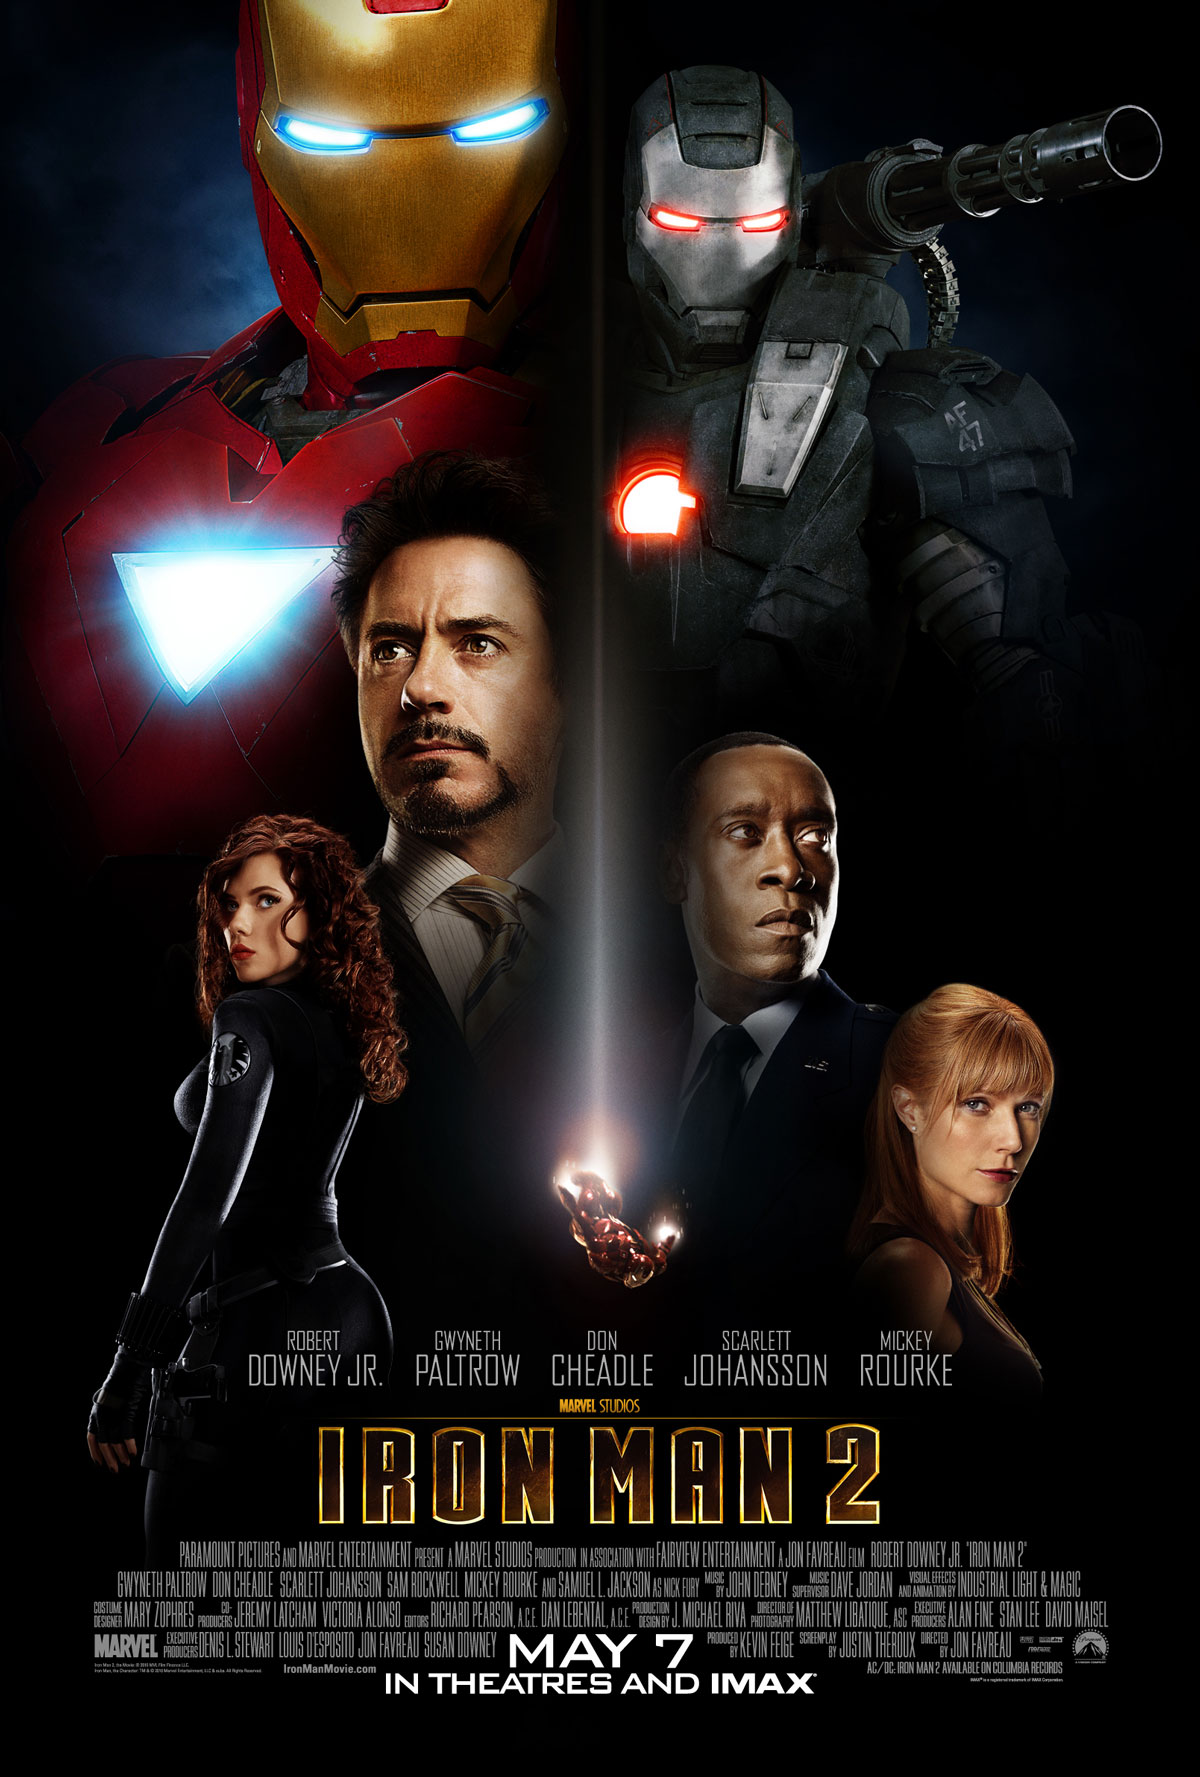 iron man 2 poster Every Marvel Movie and TV Show Ranked From Worst to Best